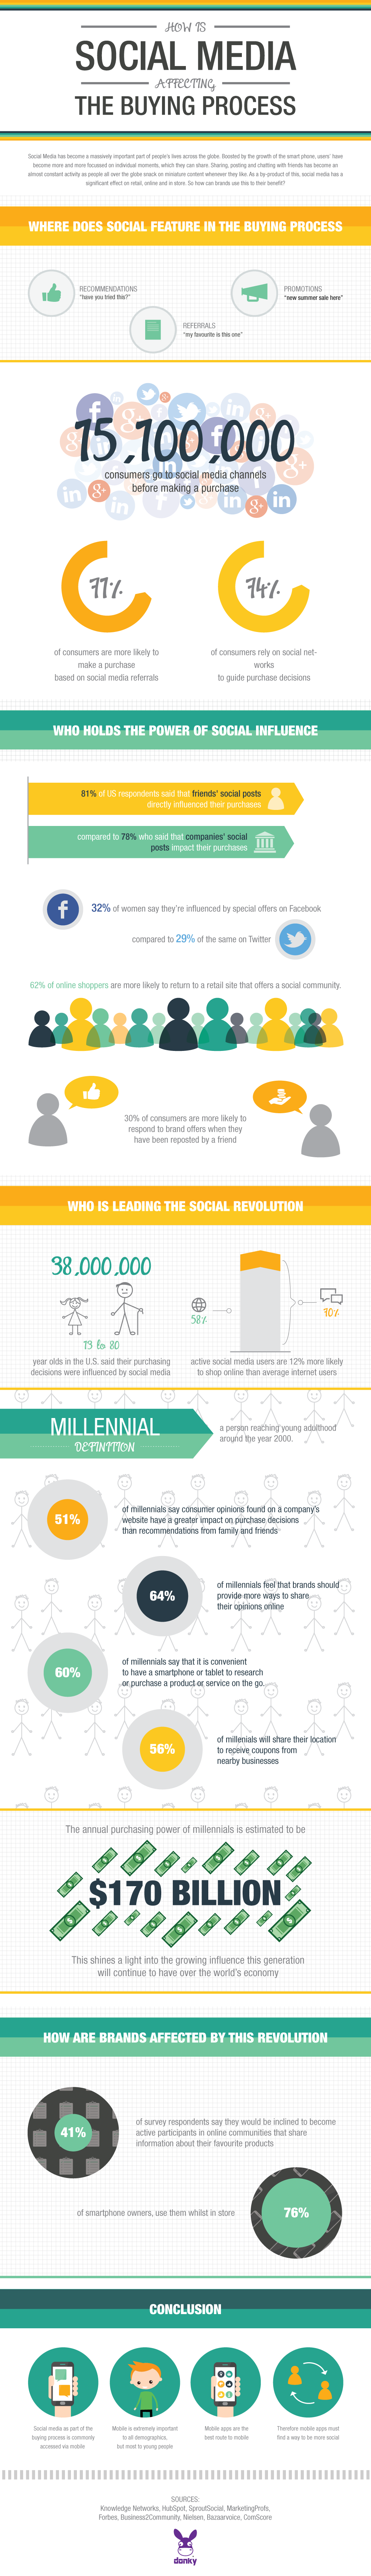 How Is Social Media Influencing the Buying Process - infographic